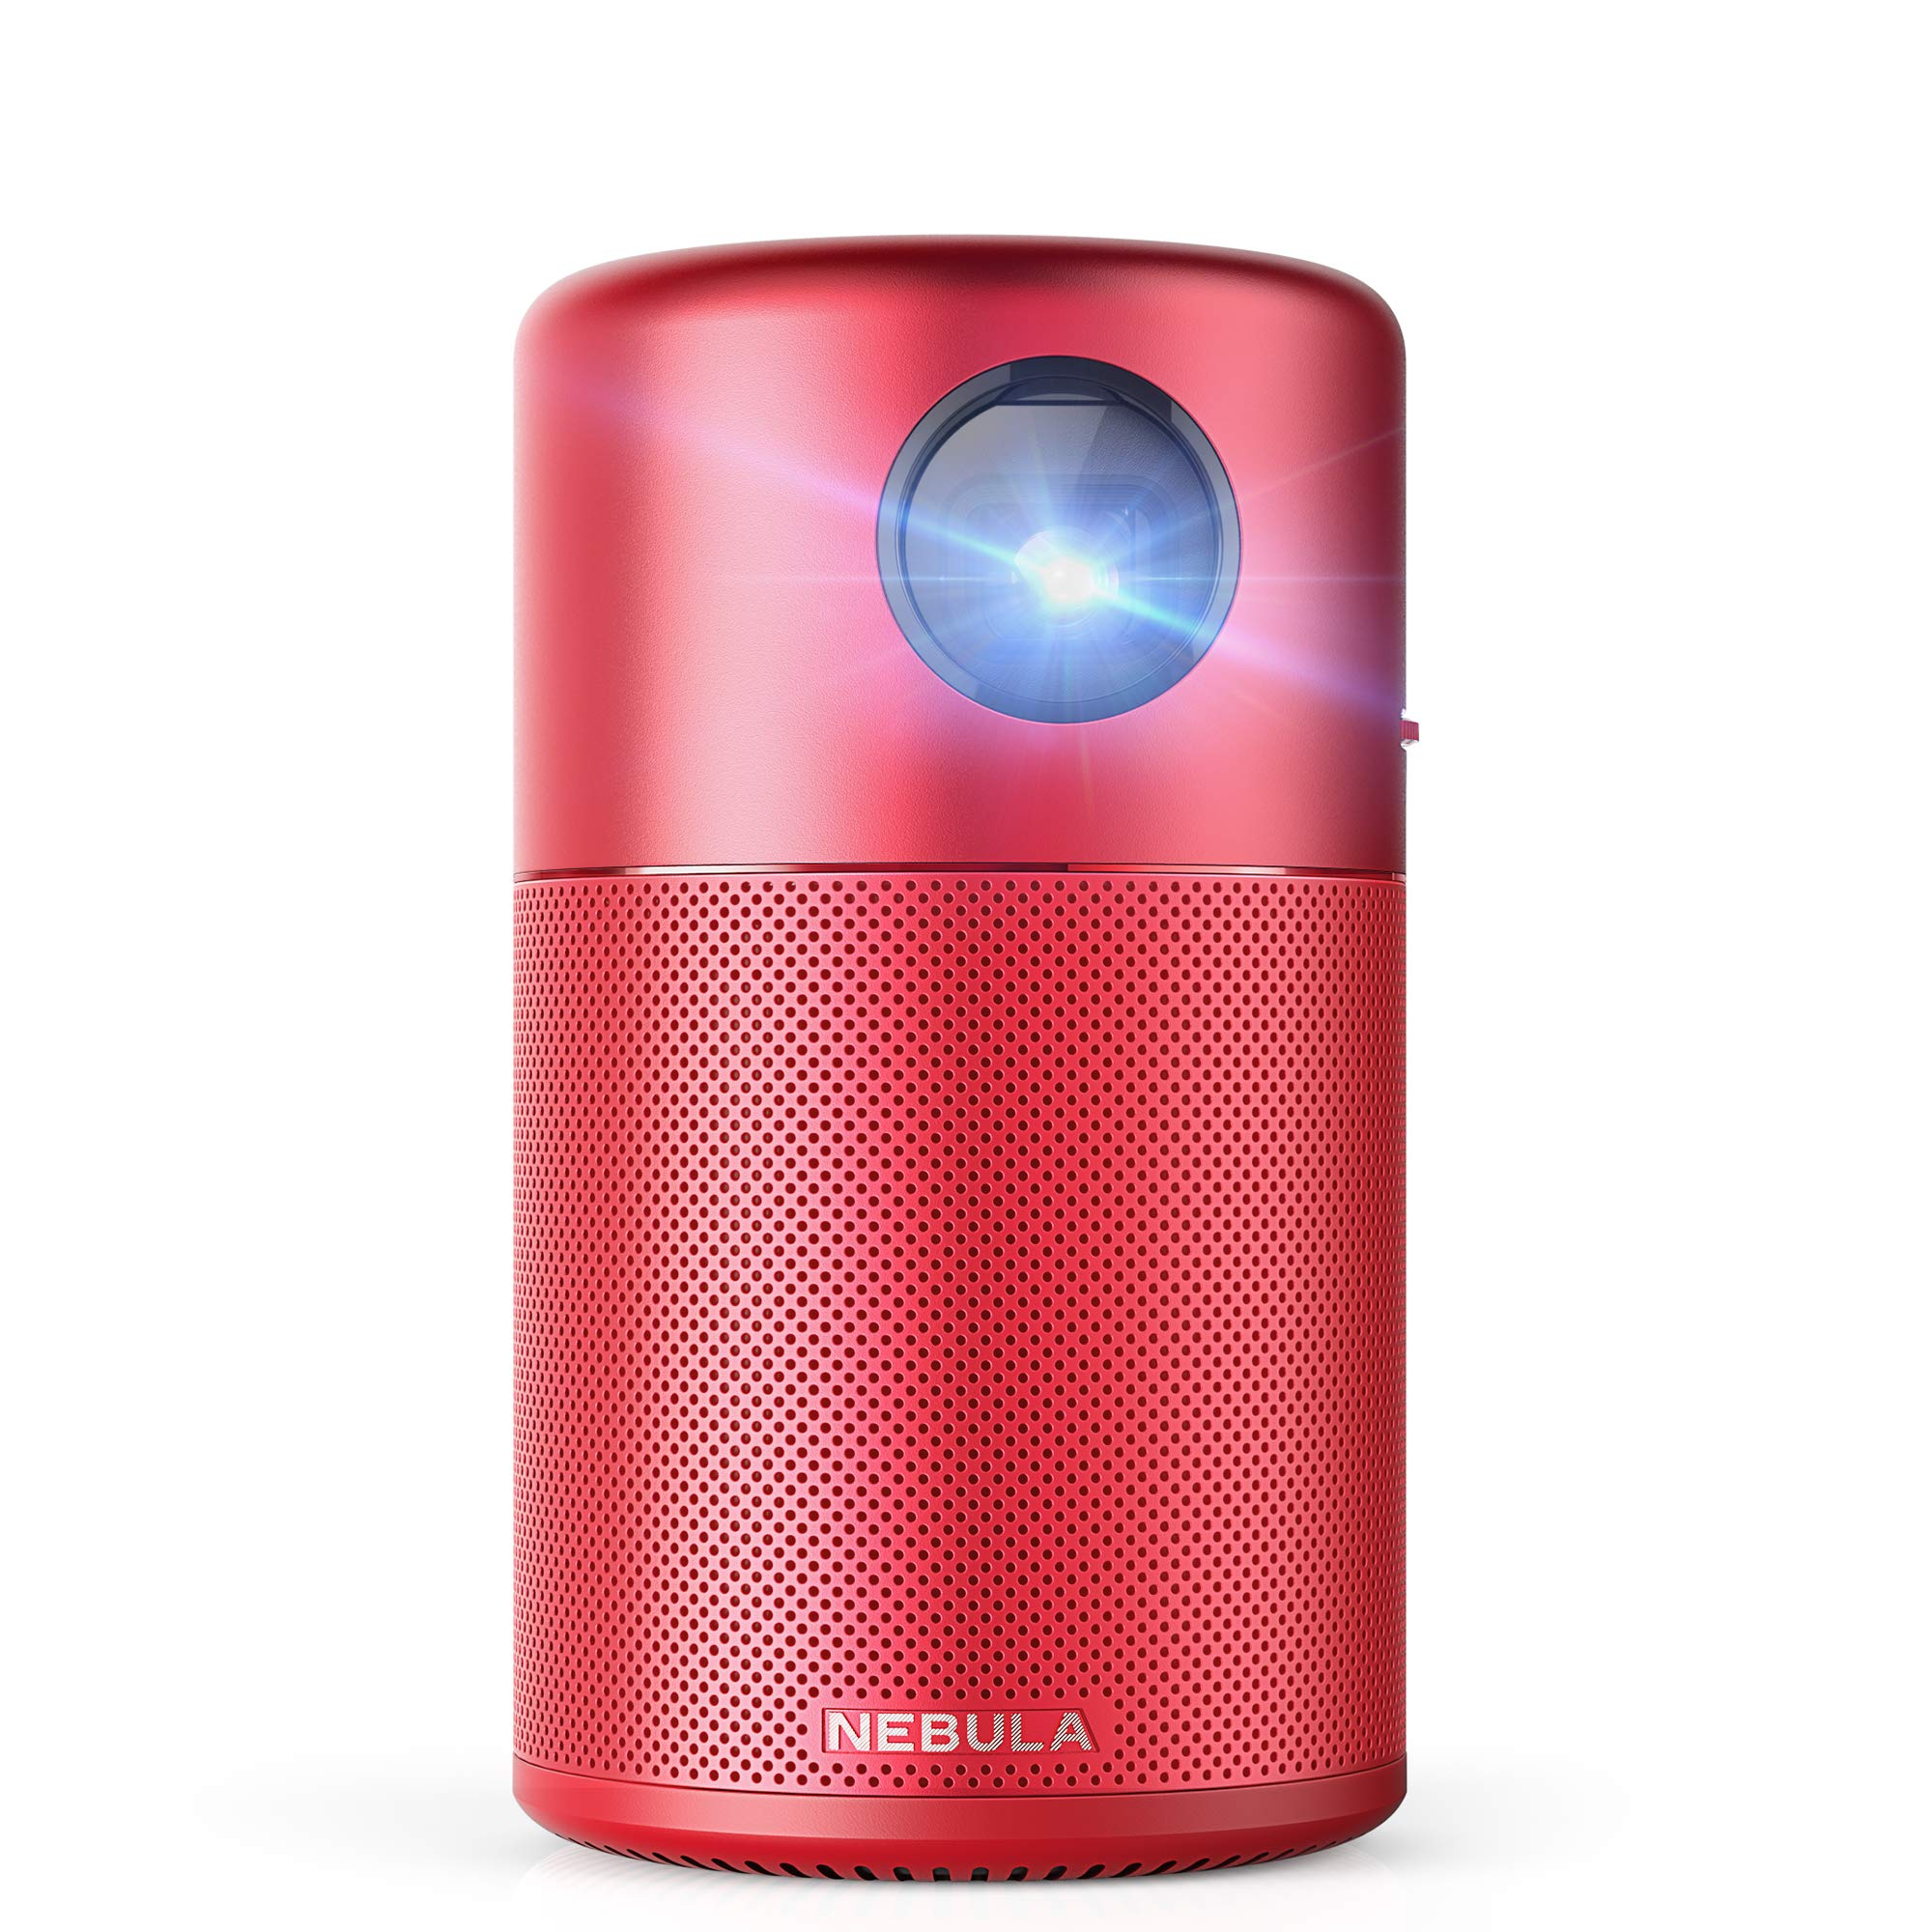 Nebula Capsule Smart Mini Projector, by Anker, Portable 100 ANSI lm High-Contrast Pocket Cinema with Wi-Fi, DLP, 360° Speaker, 100'' Picture, Android 7.1, 4-Hour Video Playtime, and App-Red by Anker (Image #1)